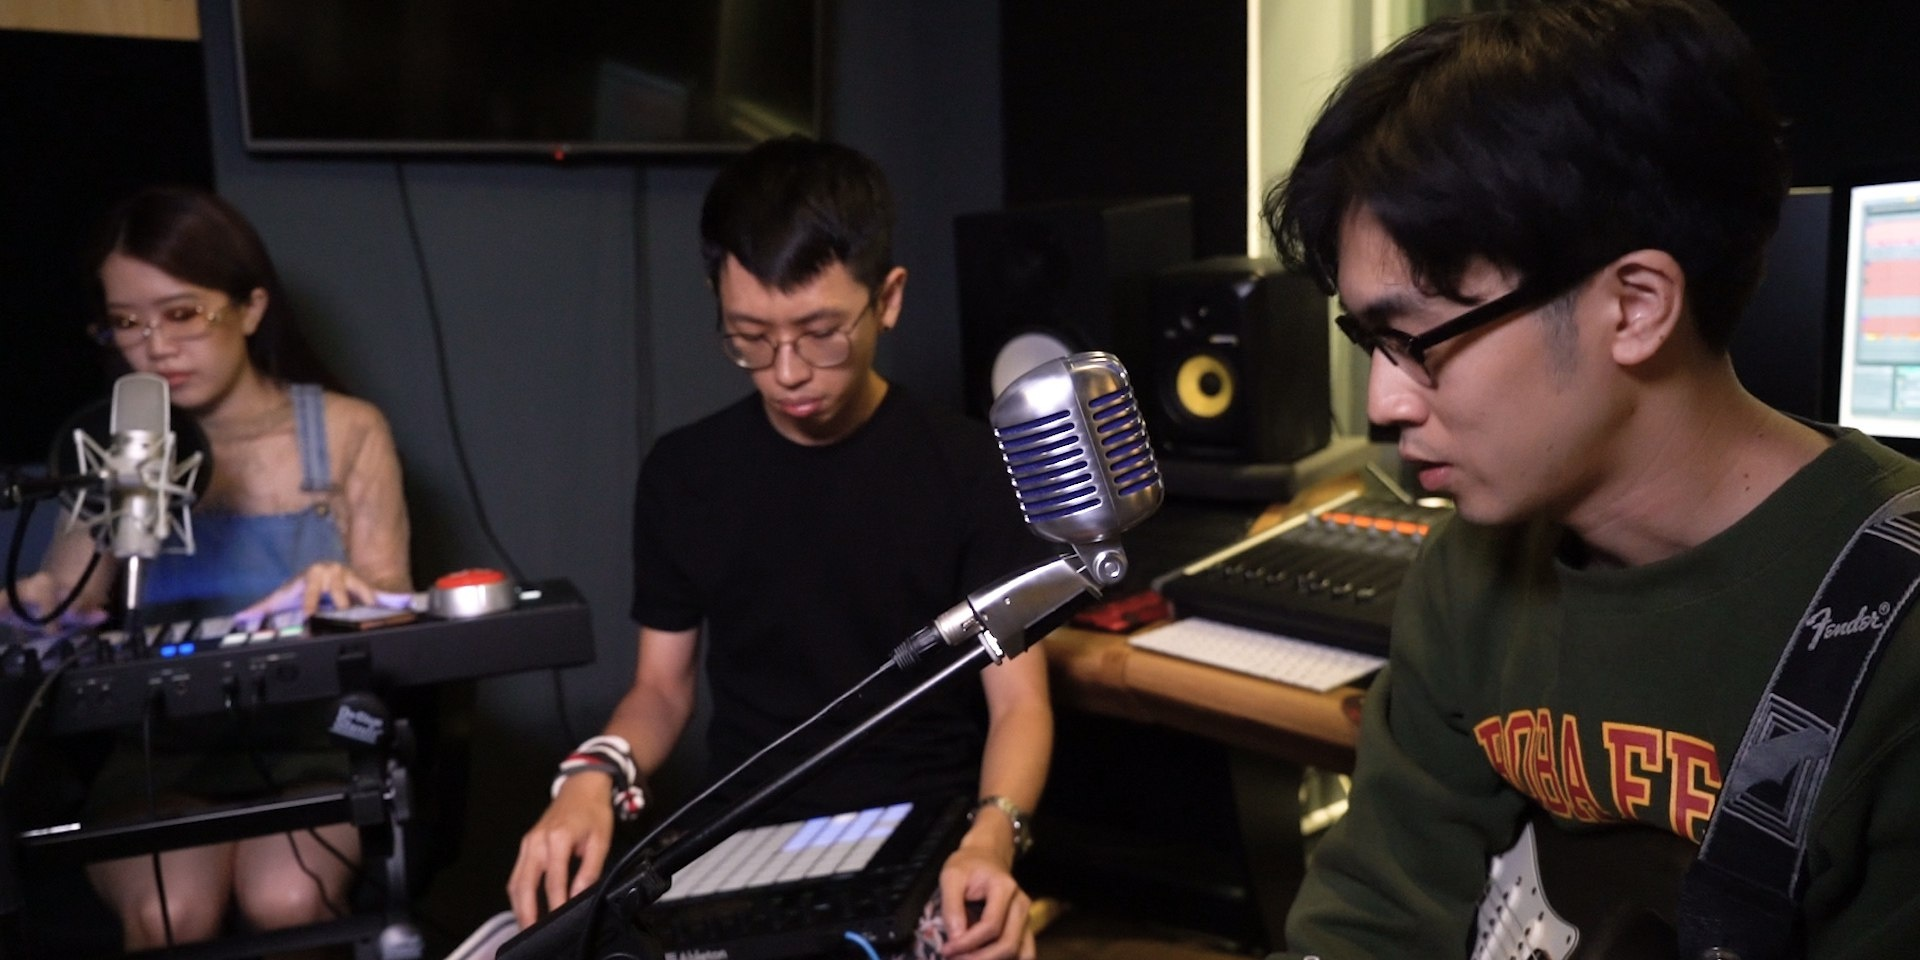 Evanturetime, Linying and Charlie Lim perform 'Vultures' live in studio for Bandwagon Presents – watch